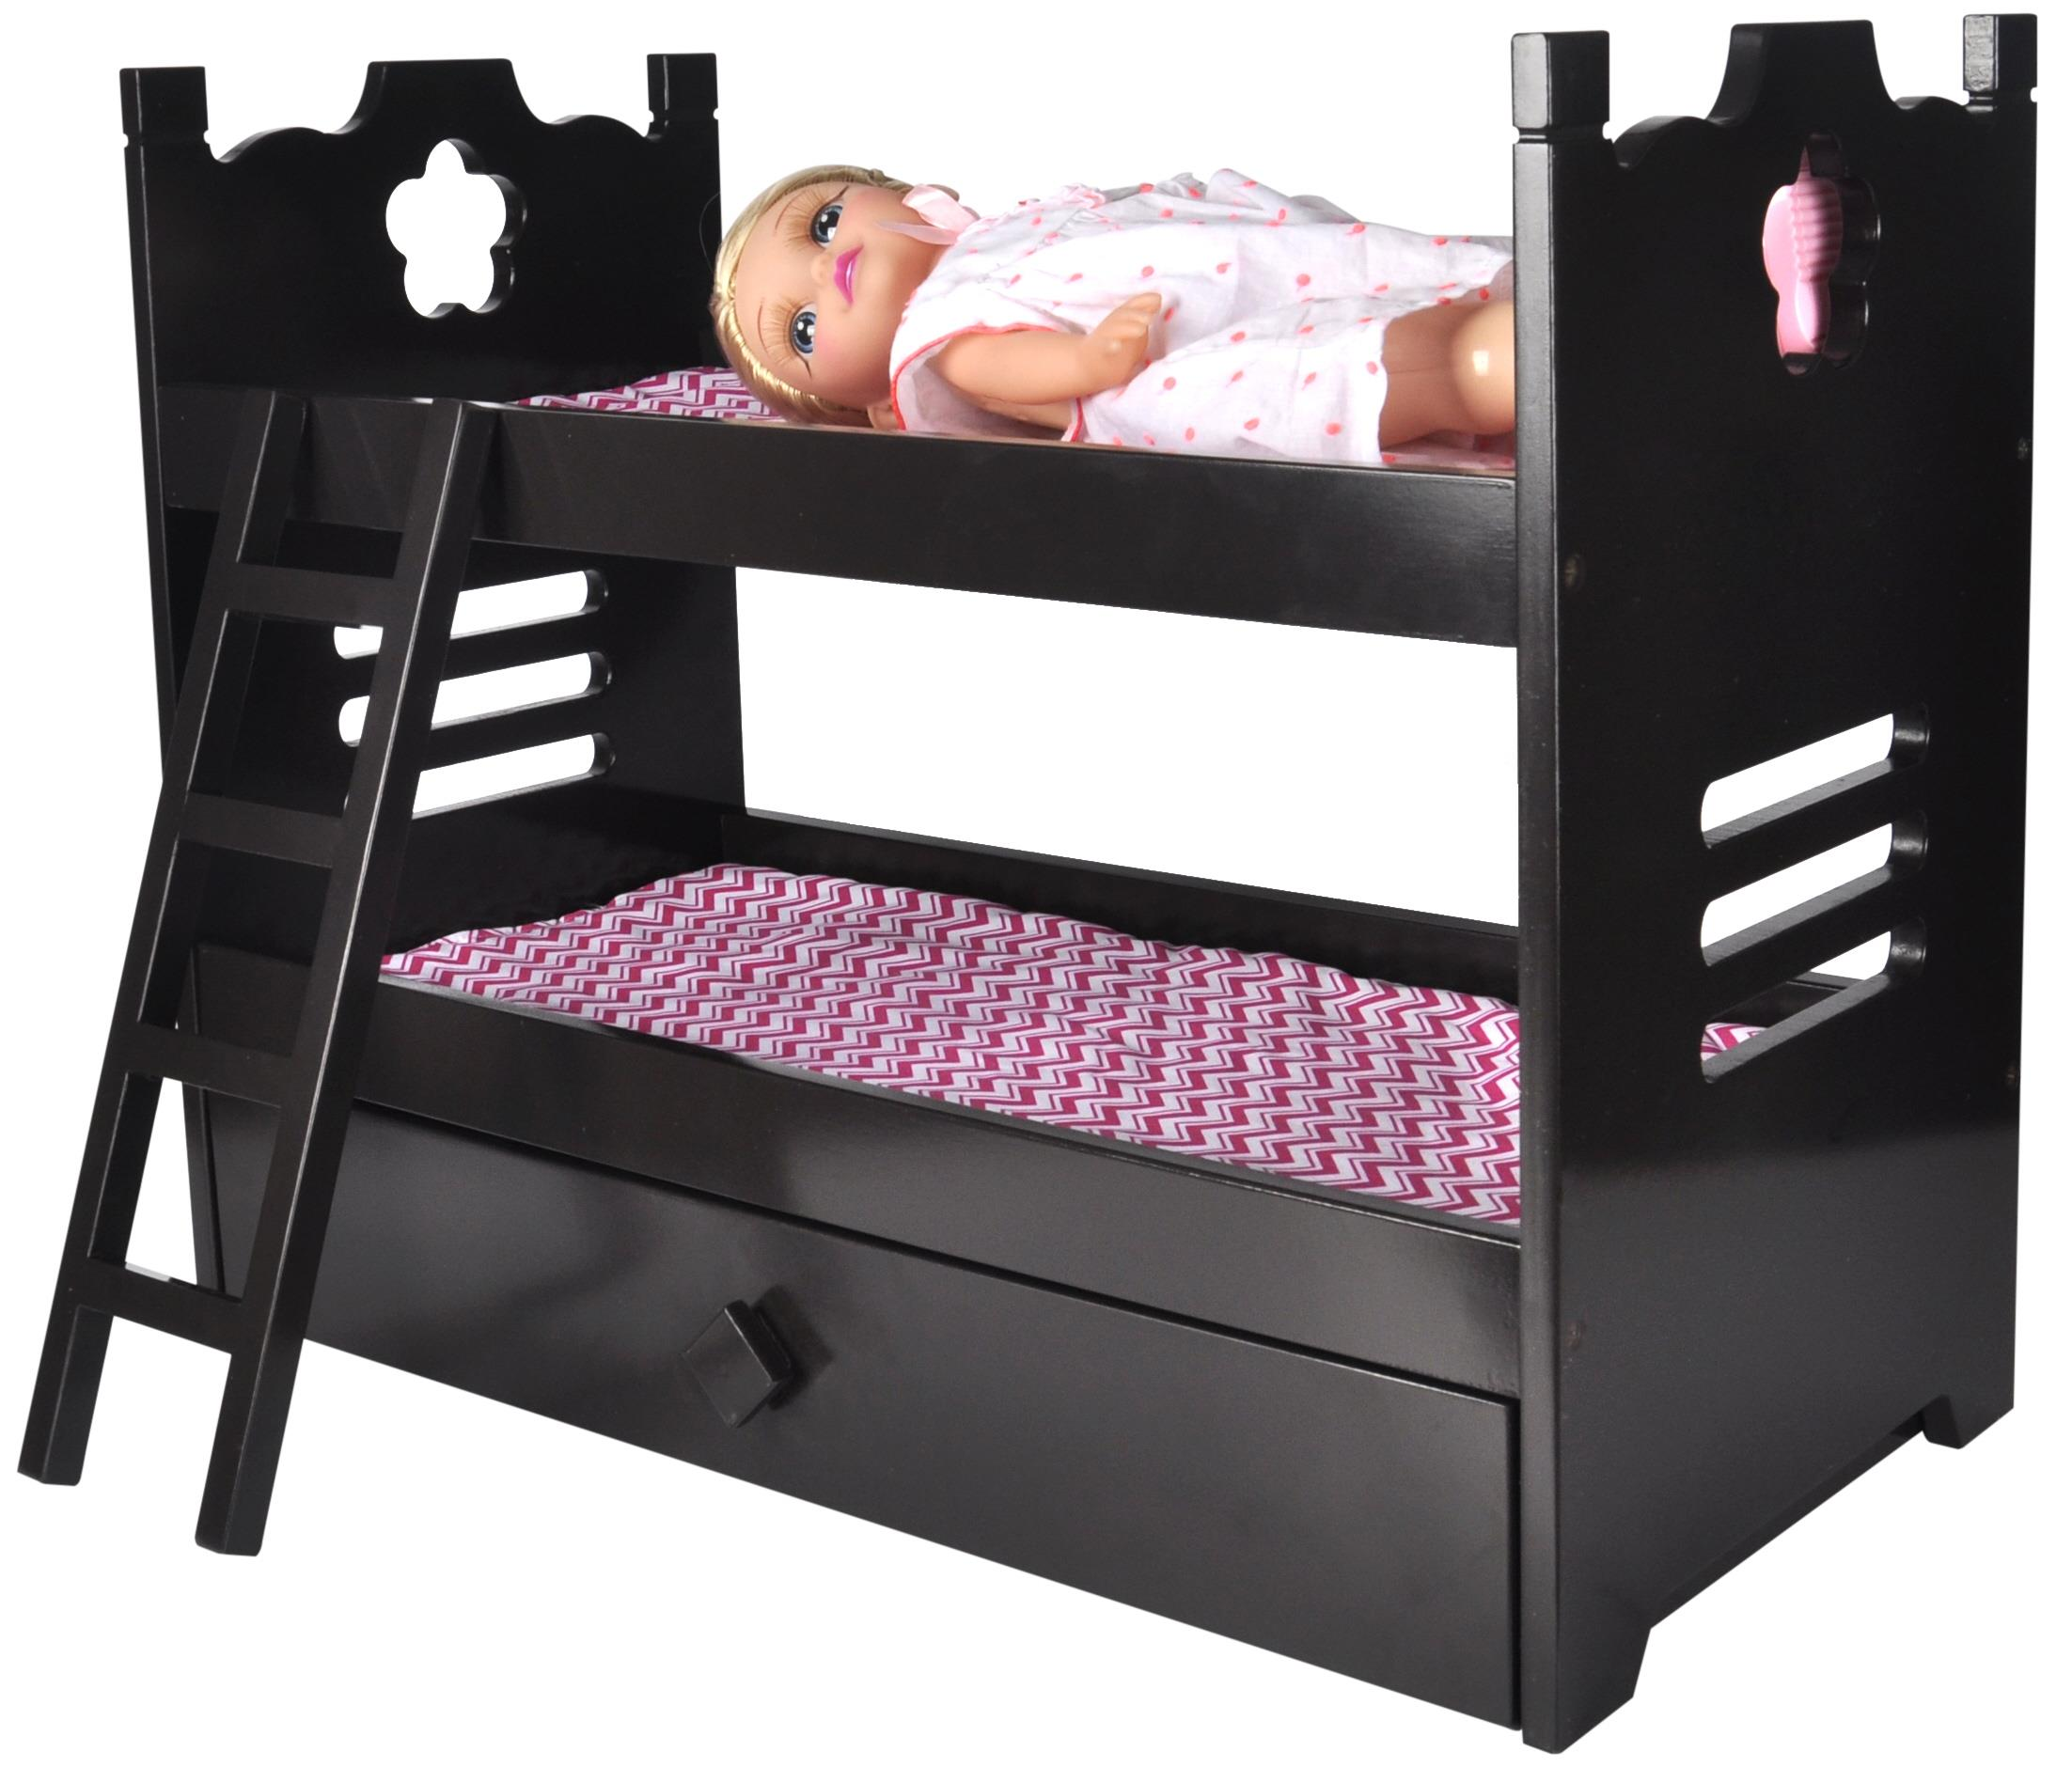 18 Inch American Girl Doll Bunk Bed With Trundle Doll Bunk Beds